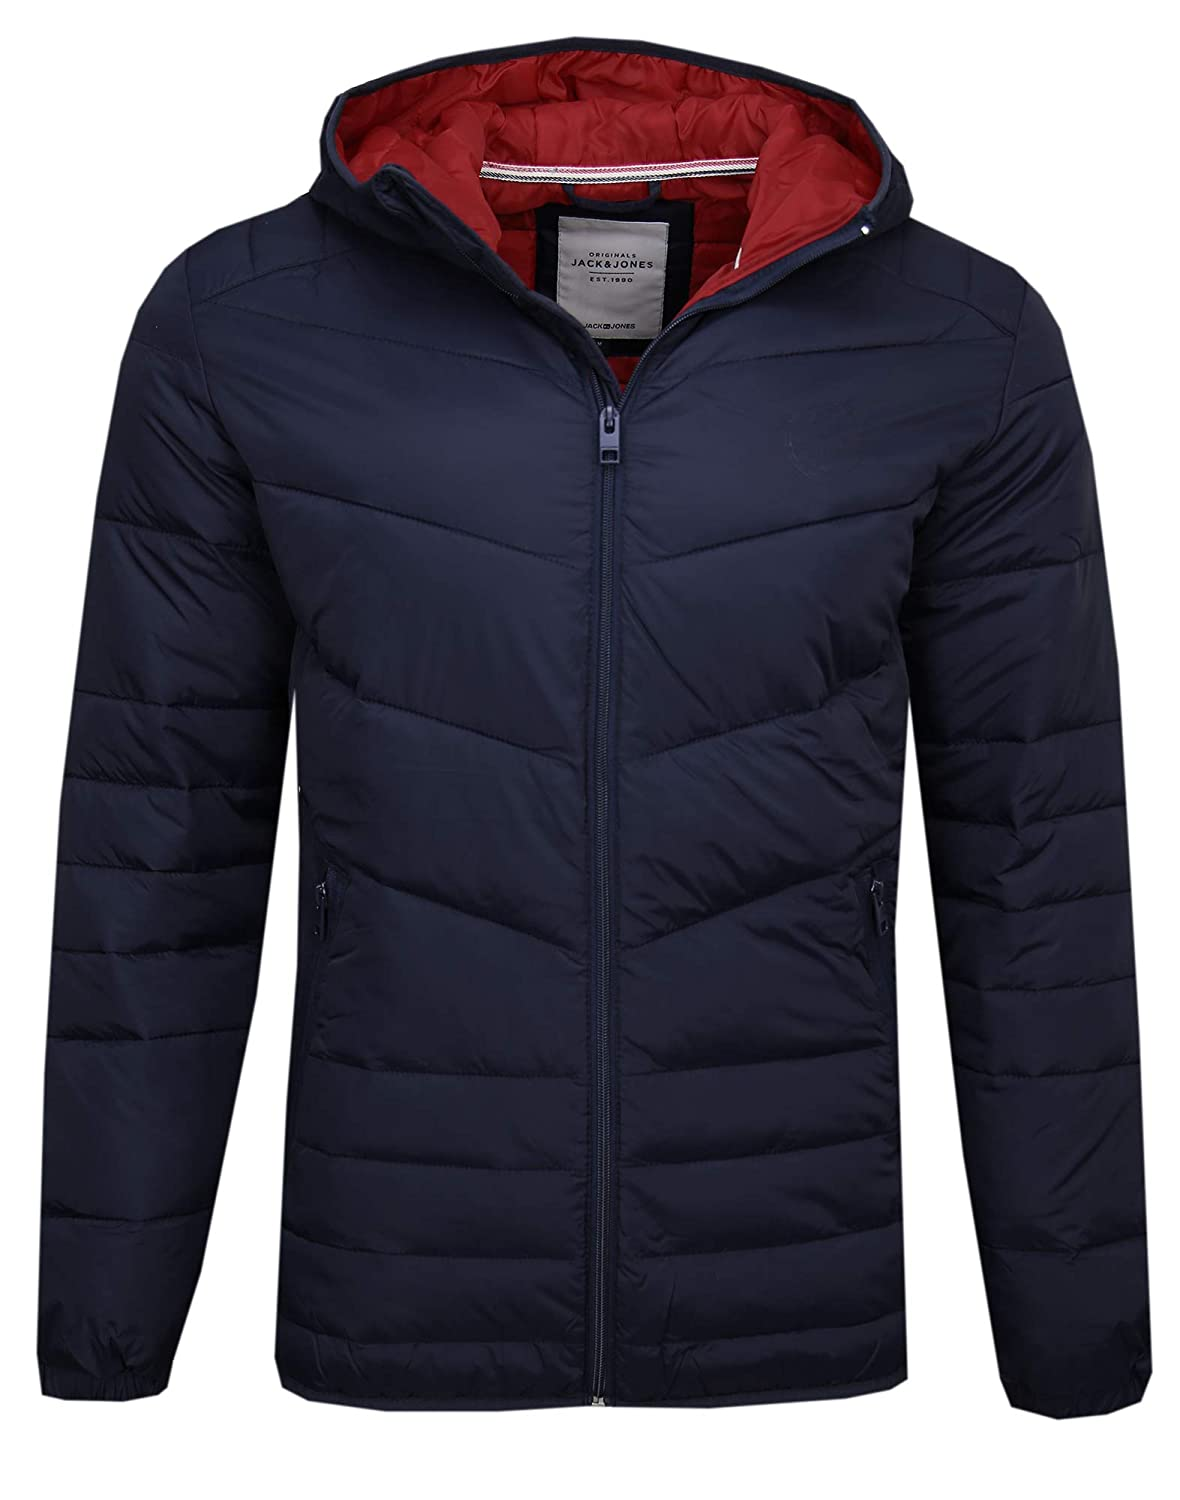 JACK   JONES Herren Jacke Jorlanding Puffer Jacket  Jack   Jones   Amazon.de  Bekleidung 7165976605